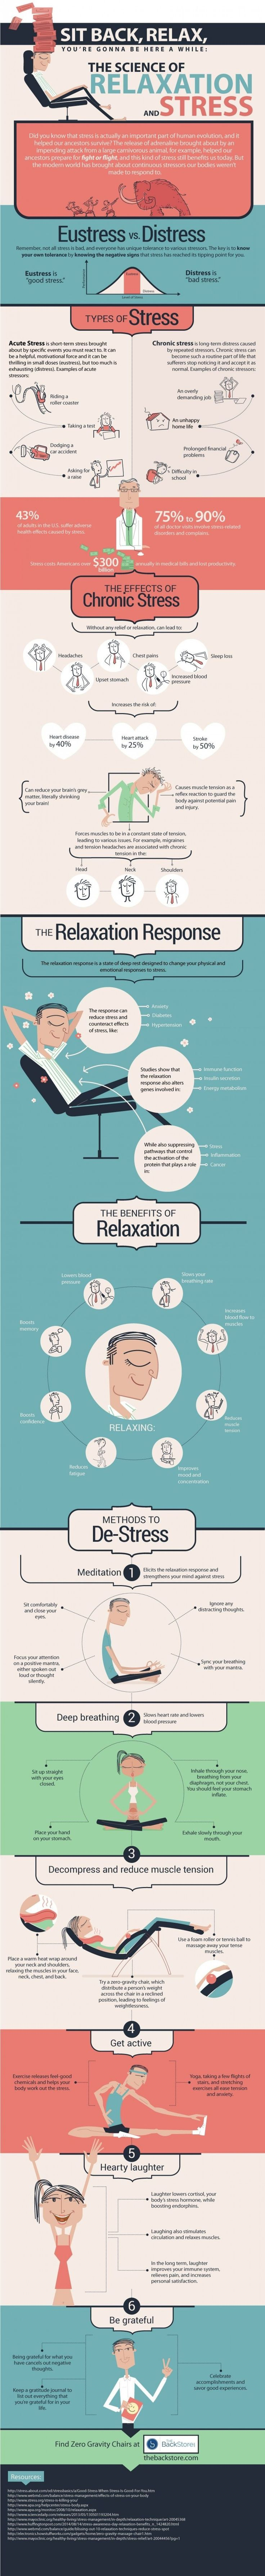 THE SCIENCE OF RELAXATION AND STRESS | Visual.ly